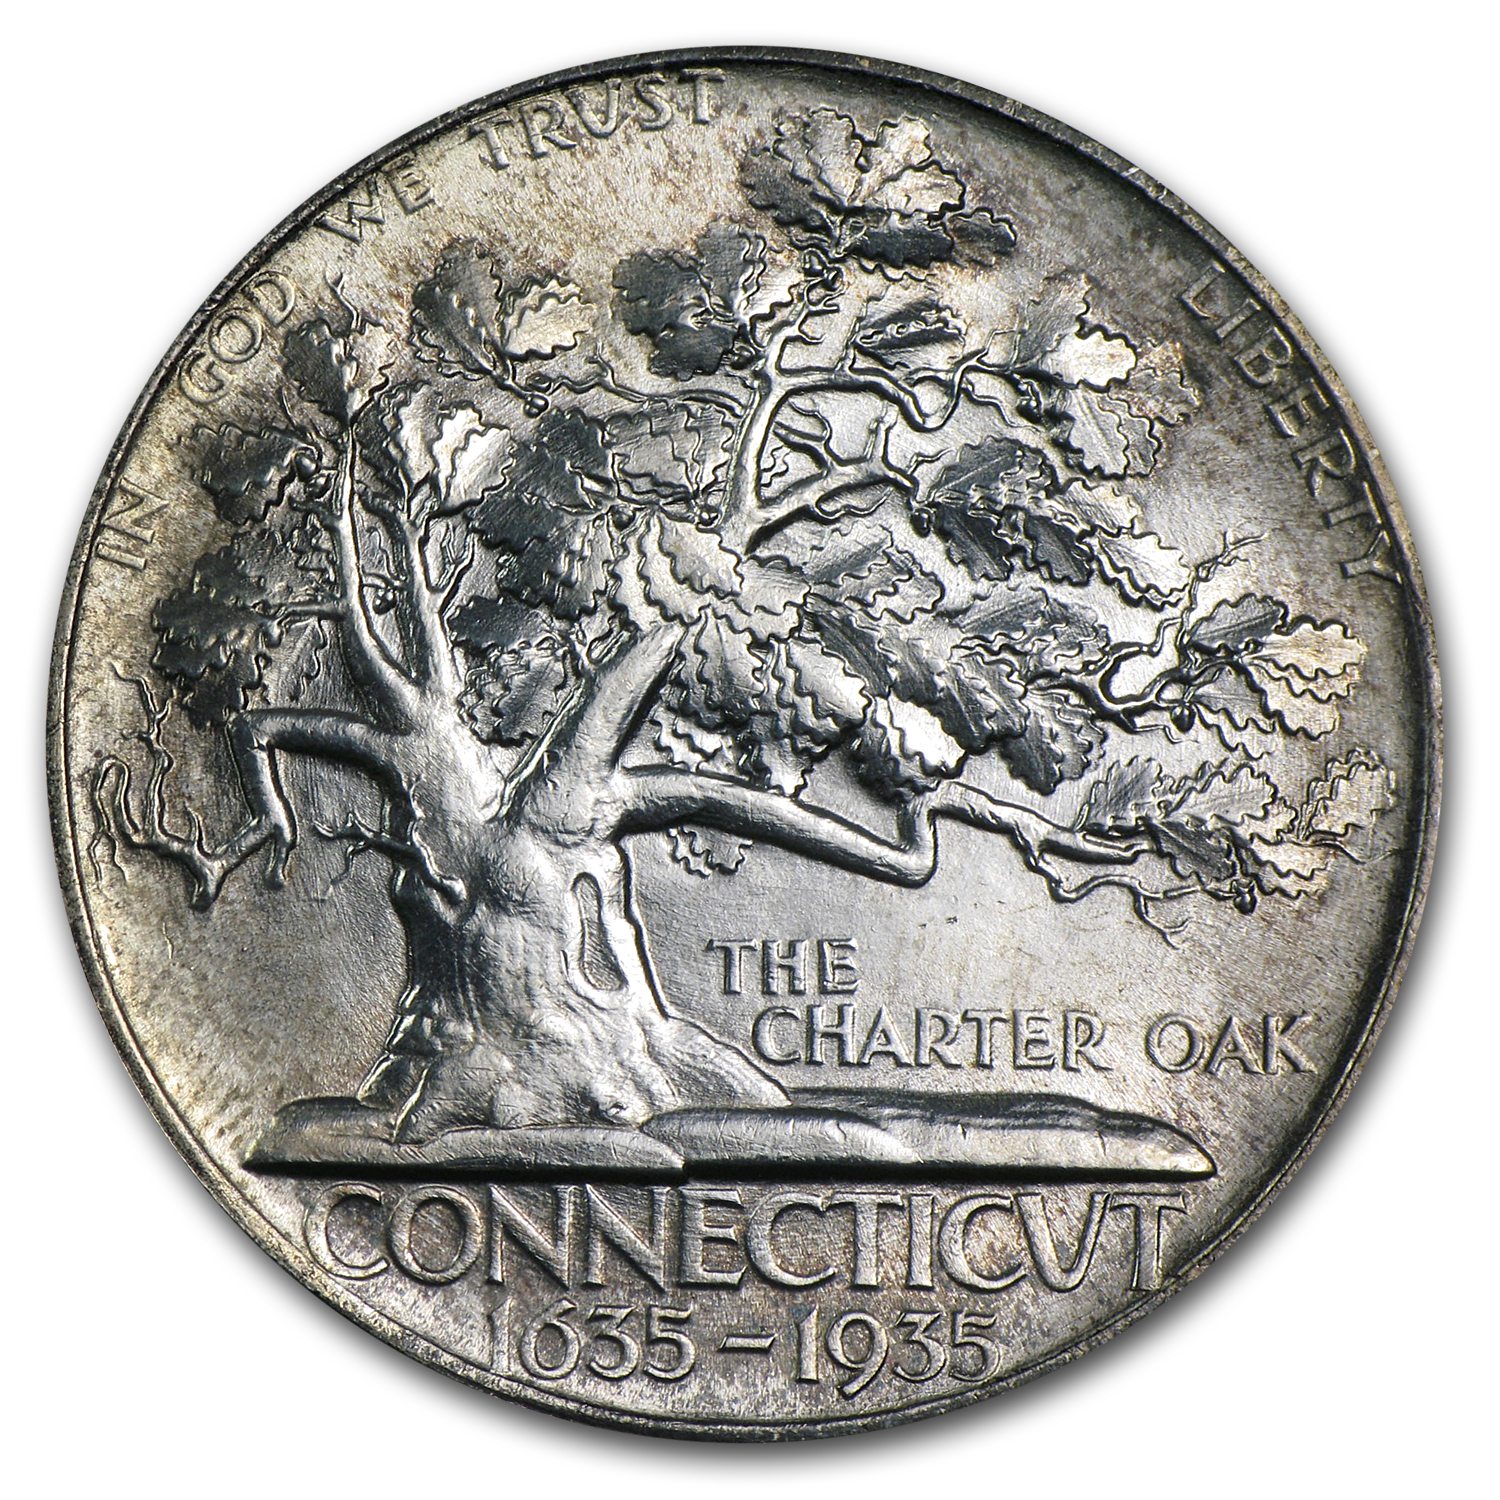 1935 Connecticut Tercentennary - Brilliant Uncirculated